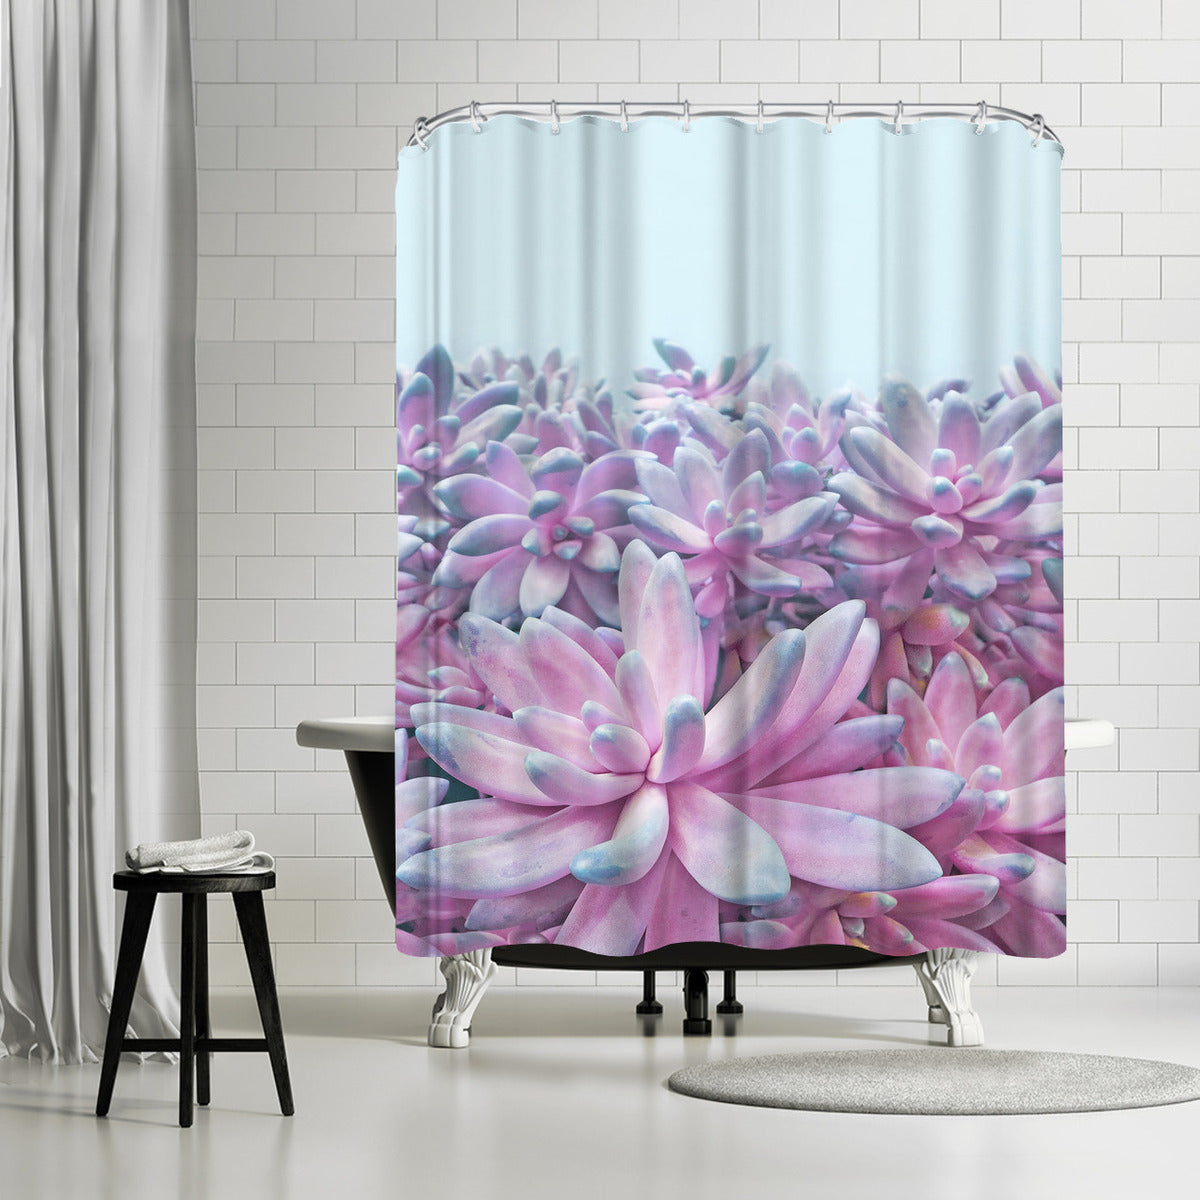 Sweet Succulent II By Emanuela Carratoni Shower Curtain - Shower Curtain - Americanflat